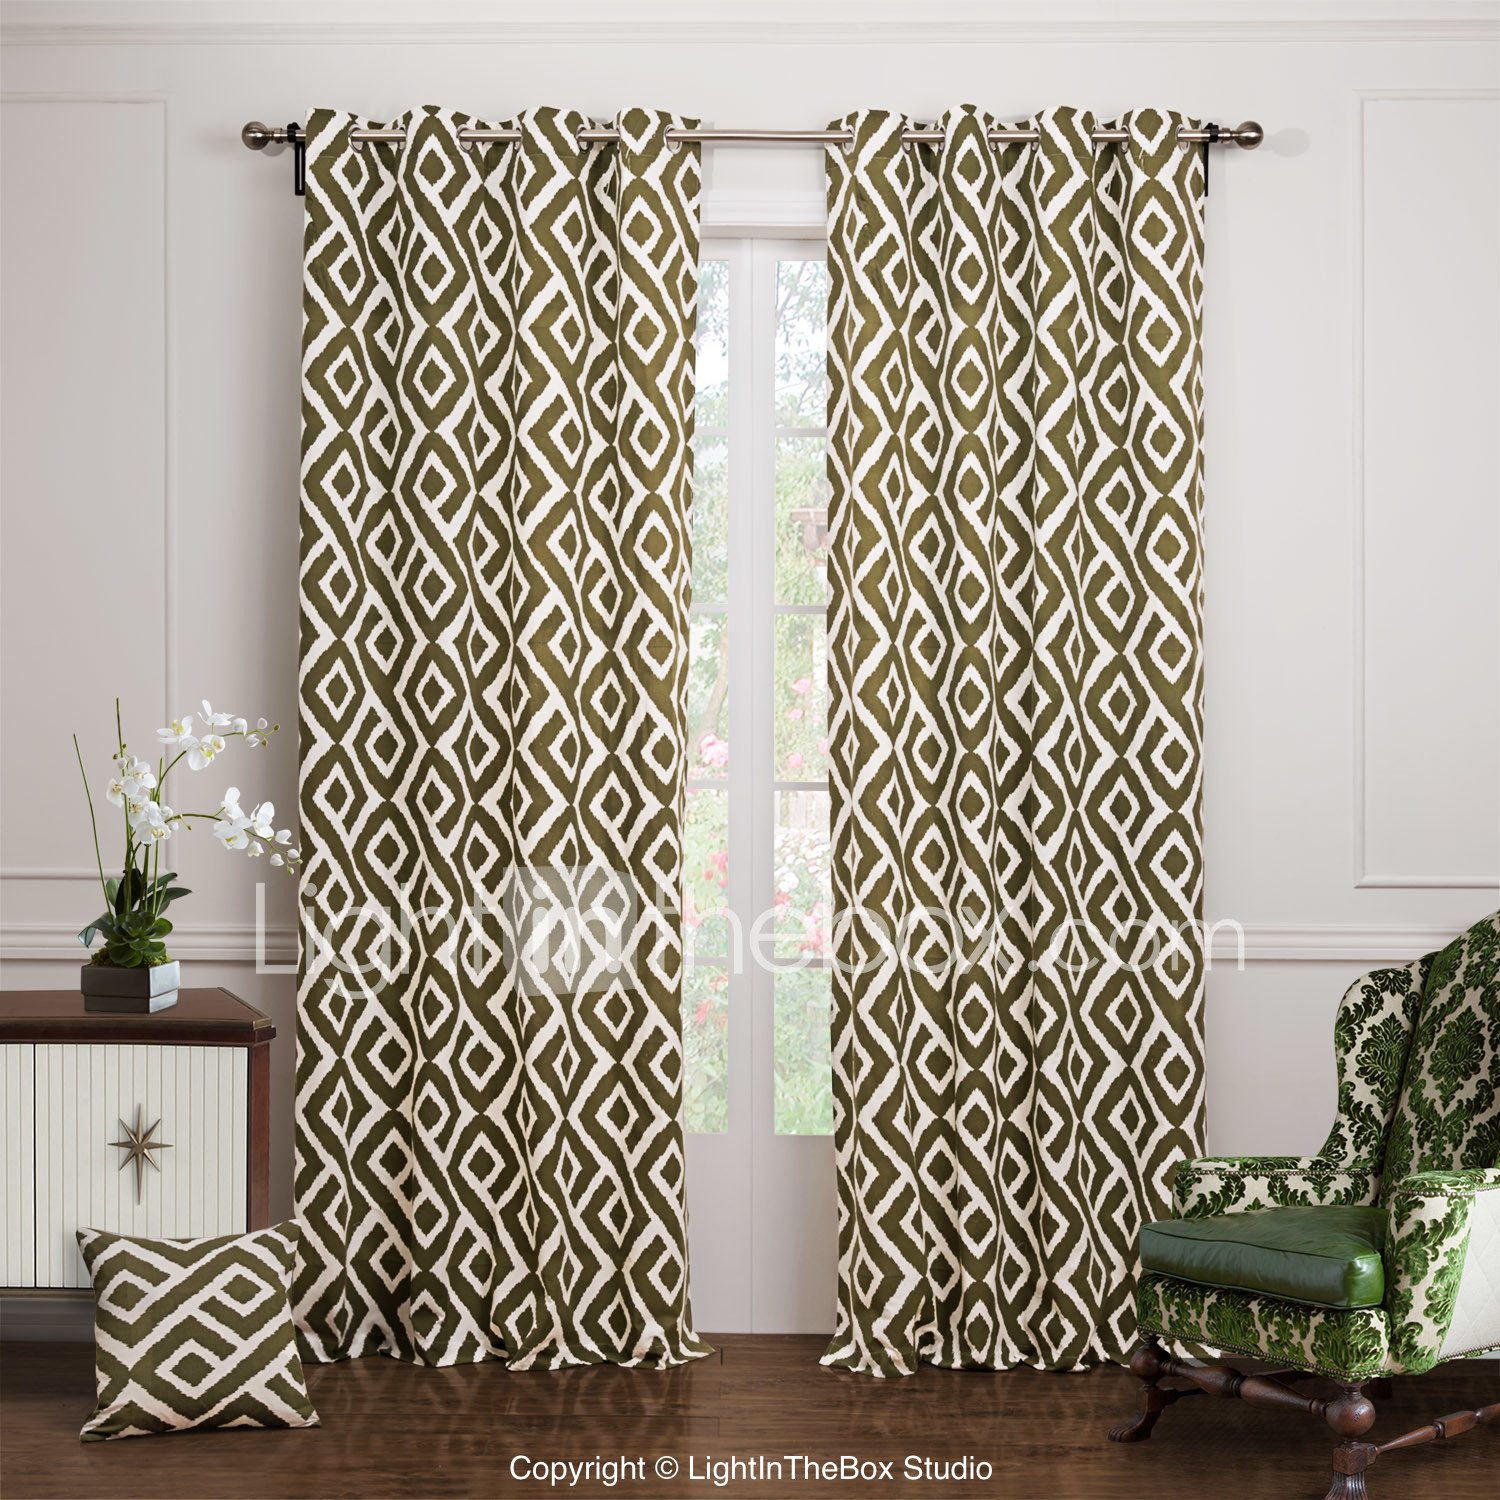 Sheer curtains privacy panel - Photo By Lightinthebox